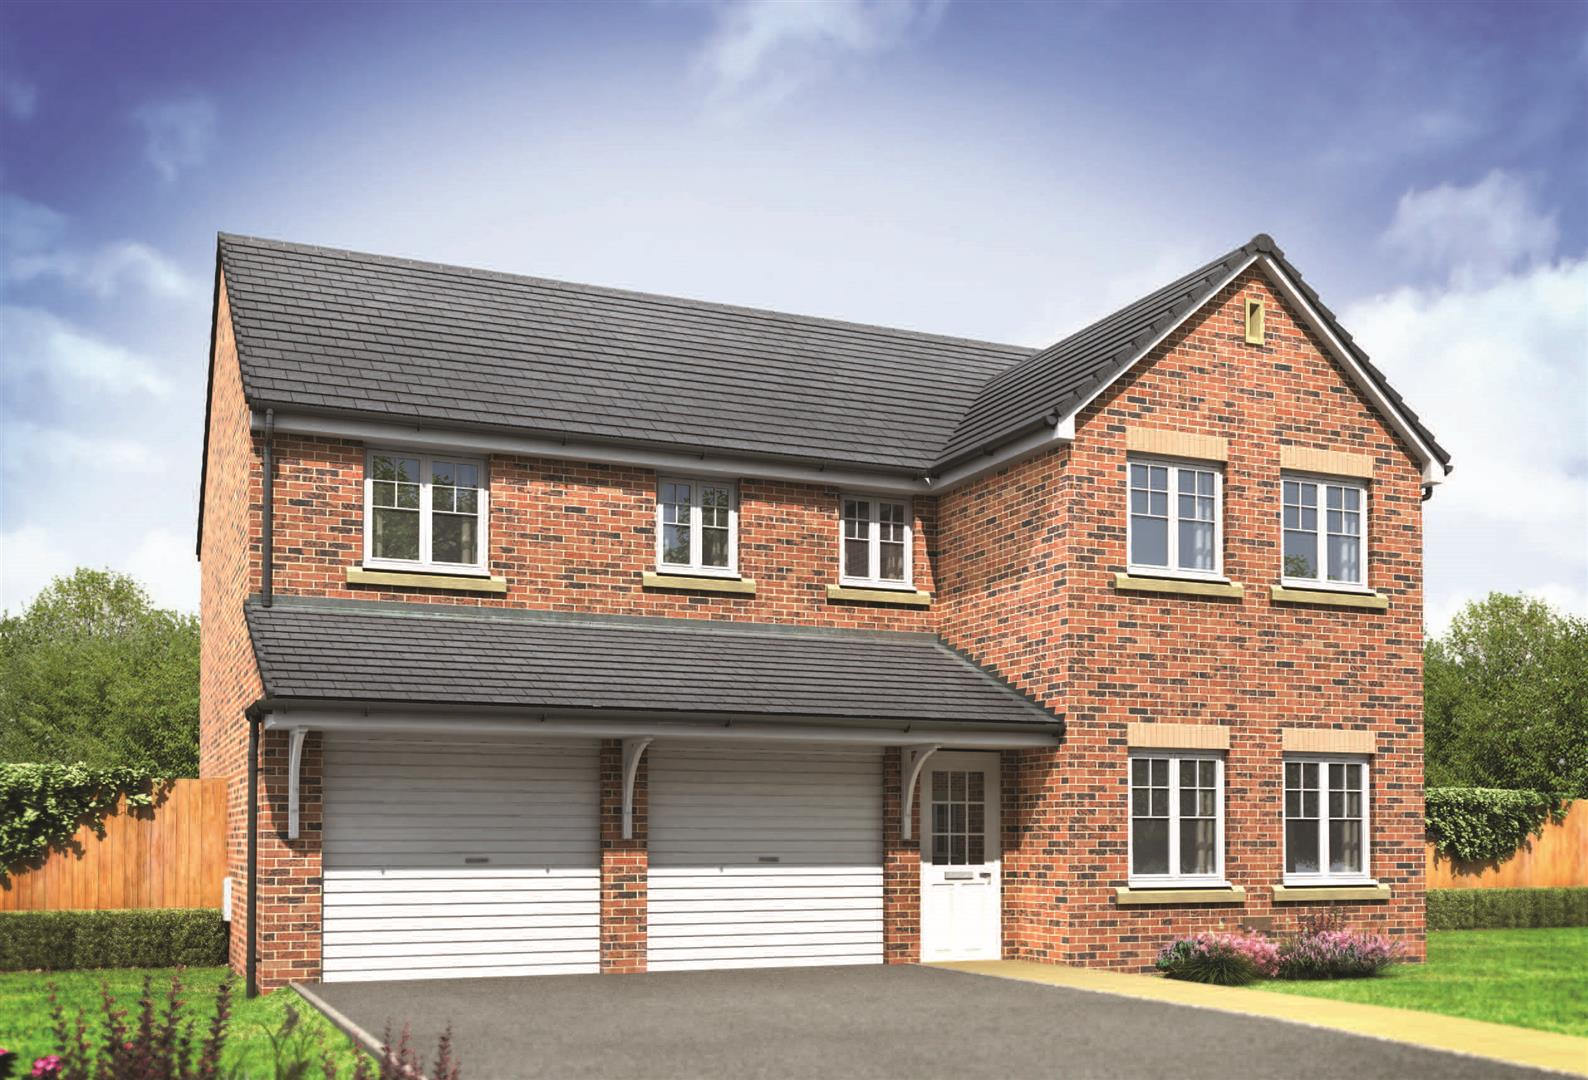 5 Bedrooms Detached House for sale in Plot 15, Milestone Grange, Stratford upon Avon